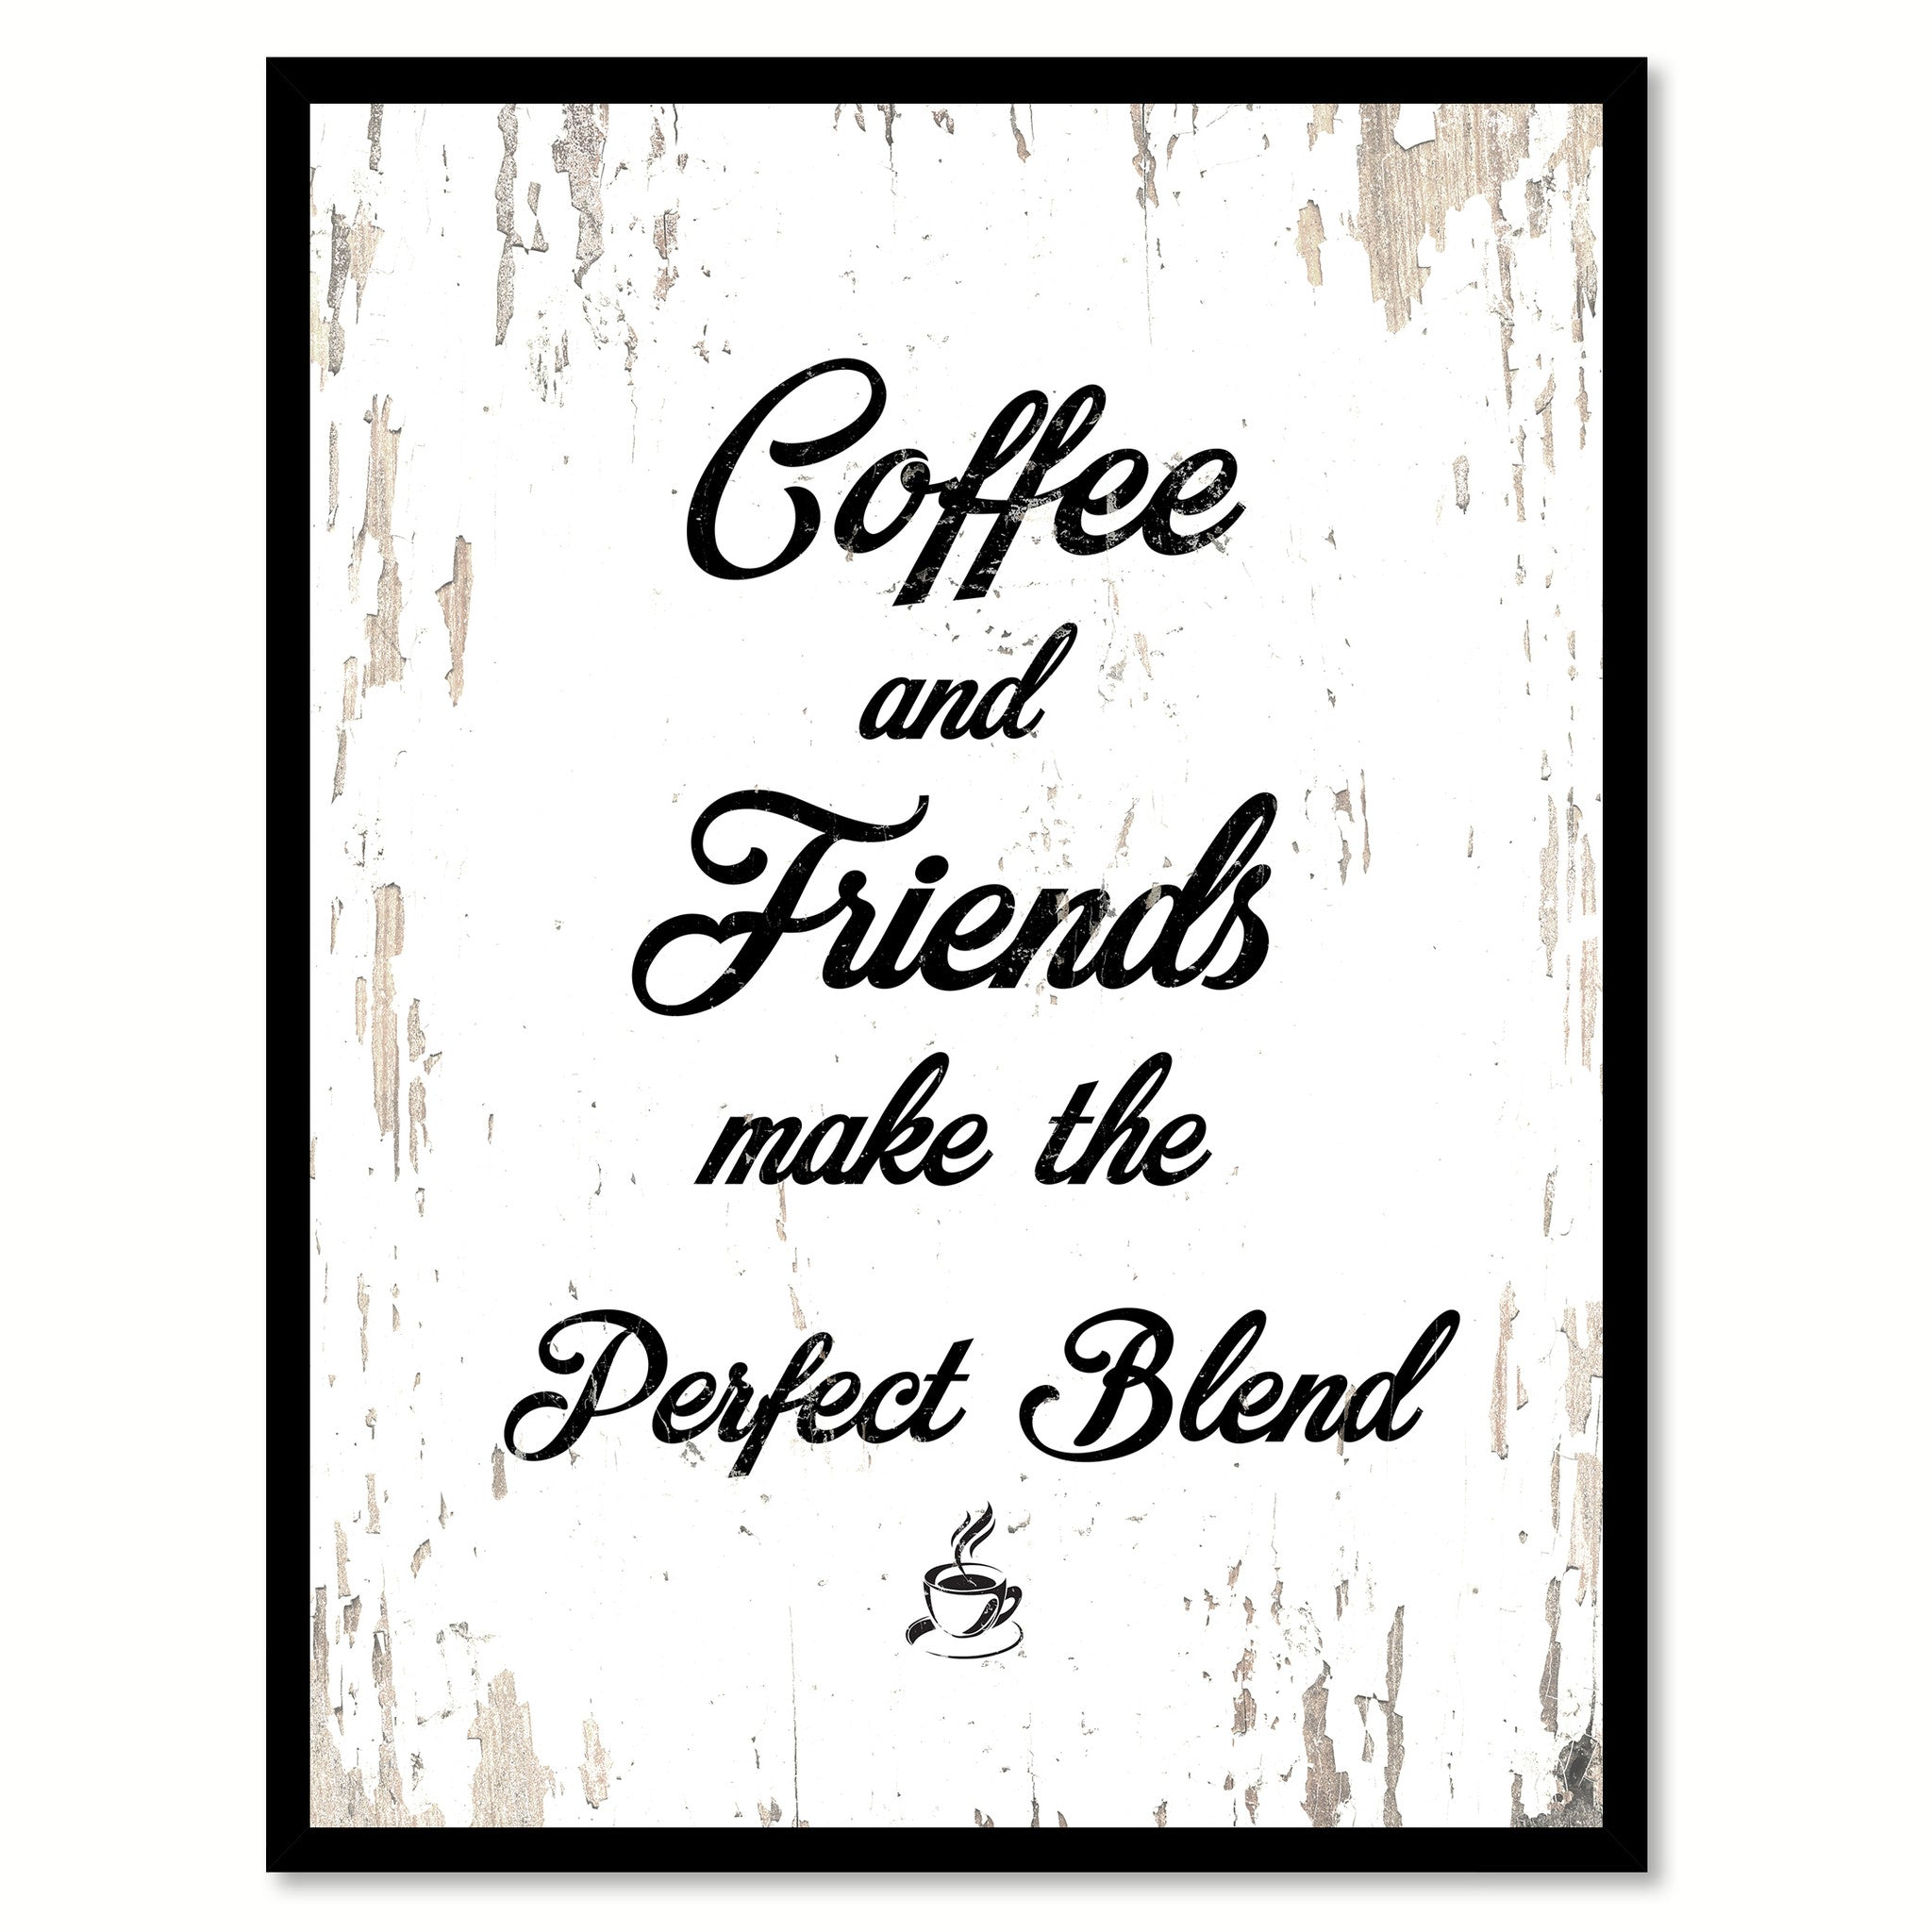 Quotes About Coffee And Friendship Coffee & Friends Make The Perfect Blend Coffee Wine Saying Quote